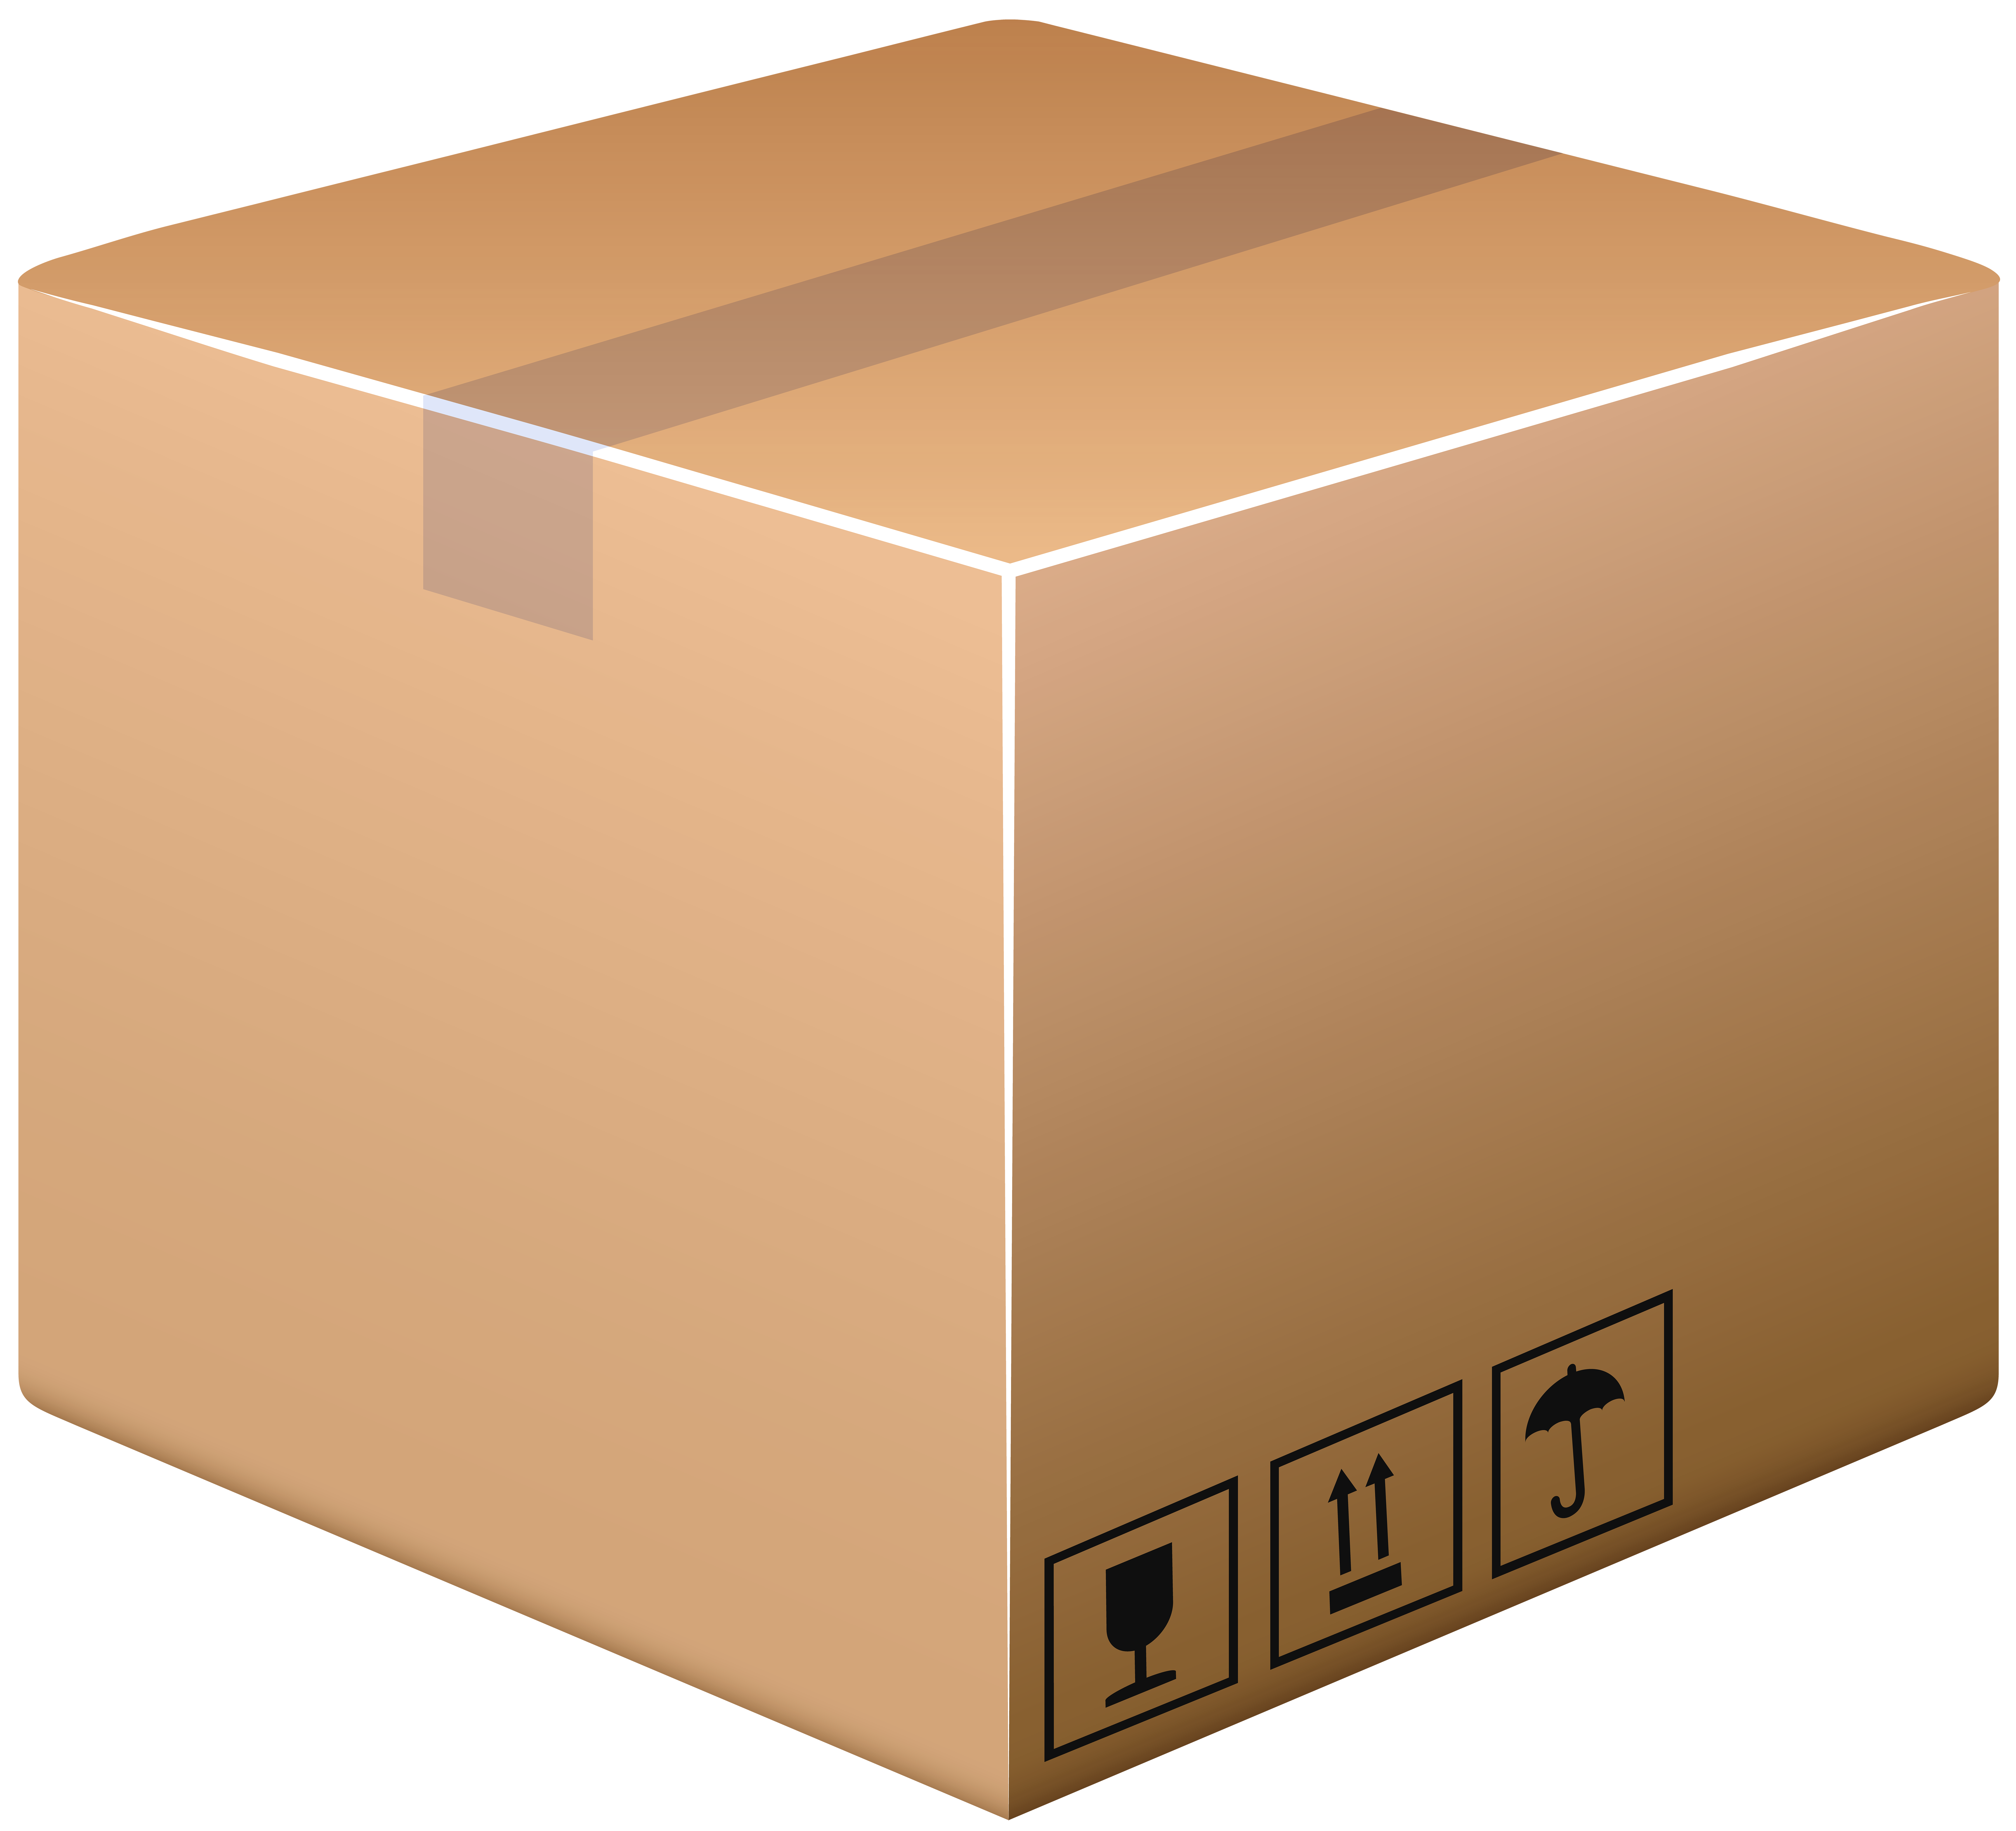 Cardboard Box Home Png - Cardboard Box PNG Clip Art Image - Best WEB Clipart